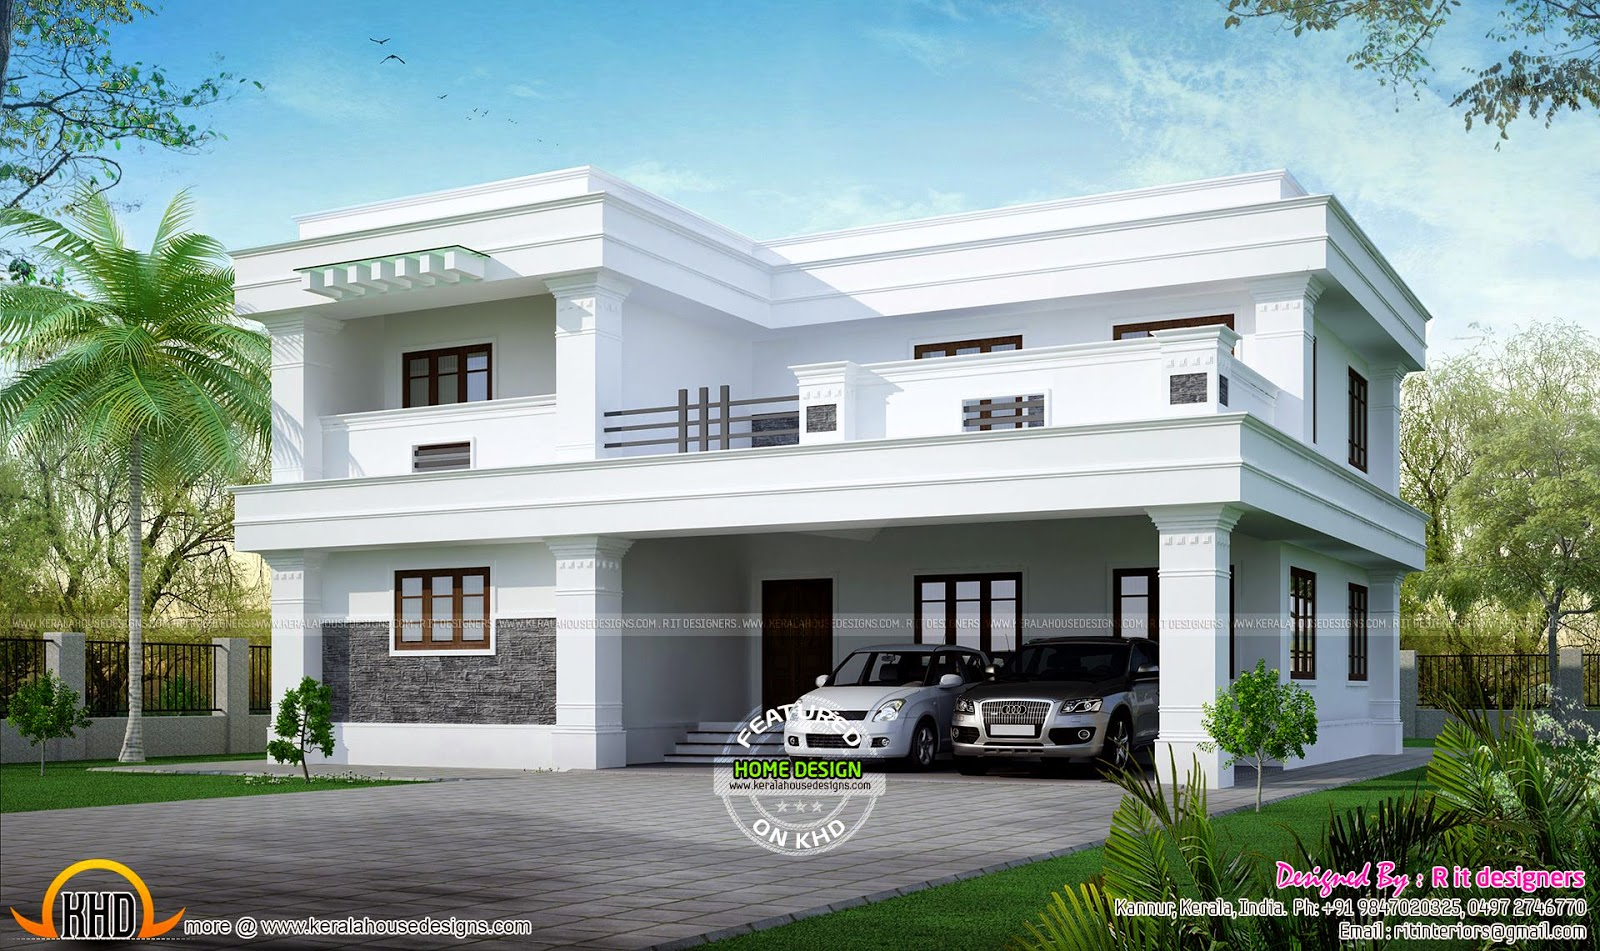 residence at bangalore kerala home design and floor plans ForHome Designs Bangalore